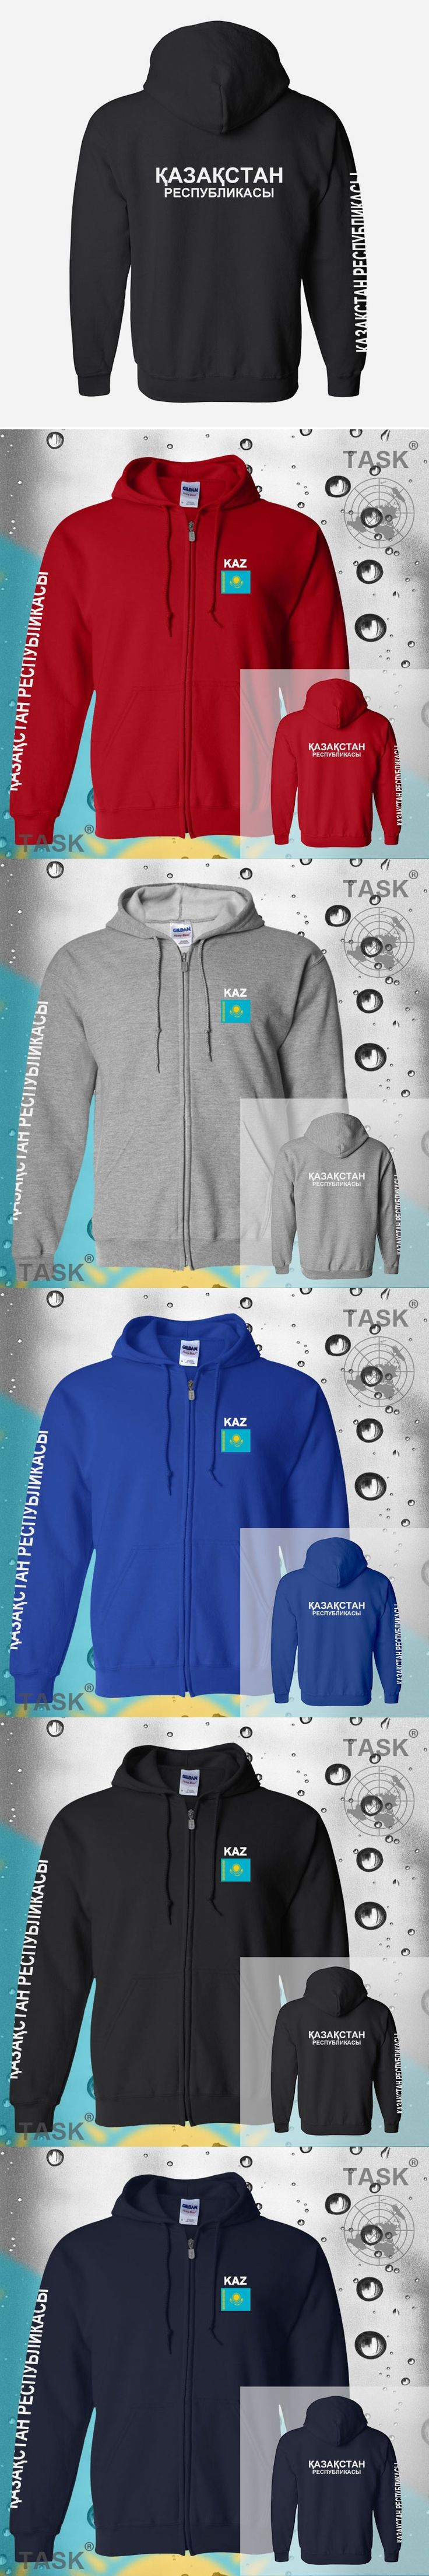 Kazakhstan KAZ	Kazakhstani mens hoodies and sweatshirt jerseys polo sweat new streetwear tracksuit nations fleece zipper flags